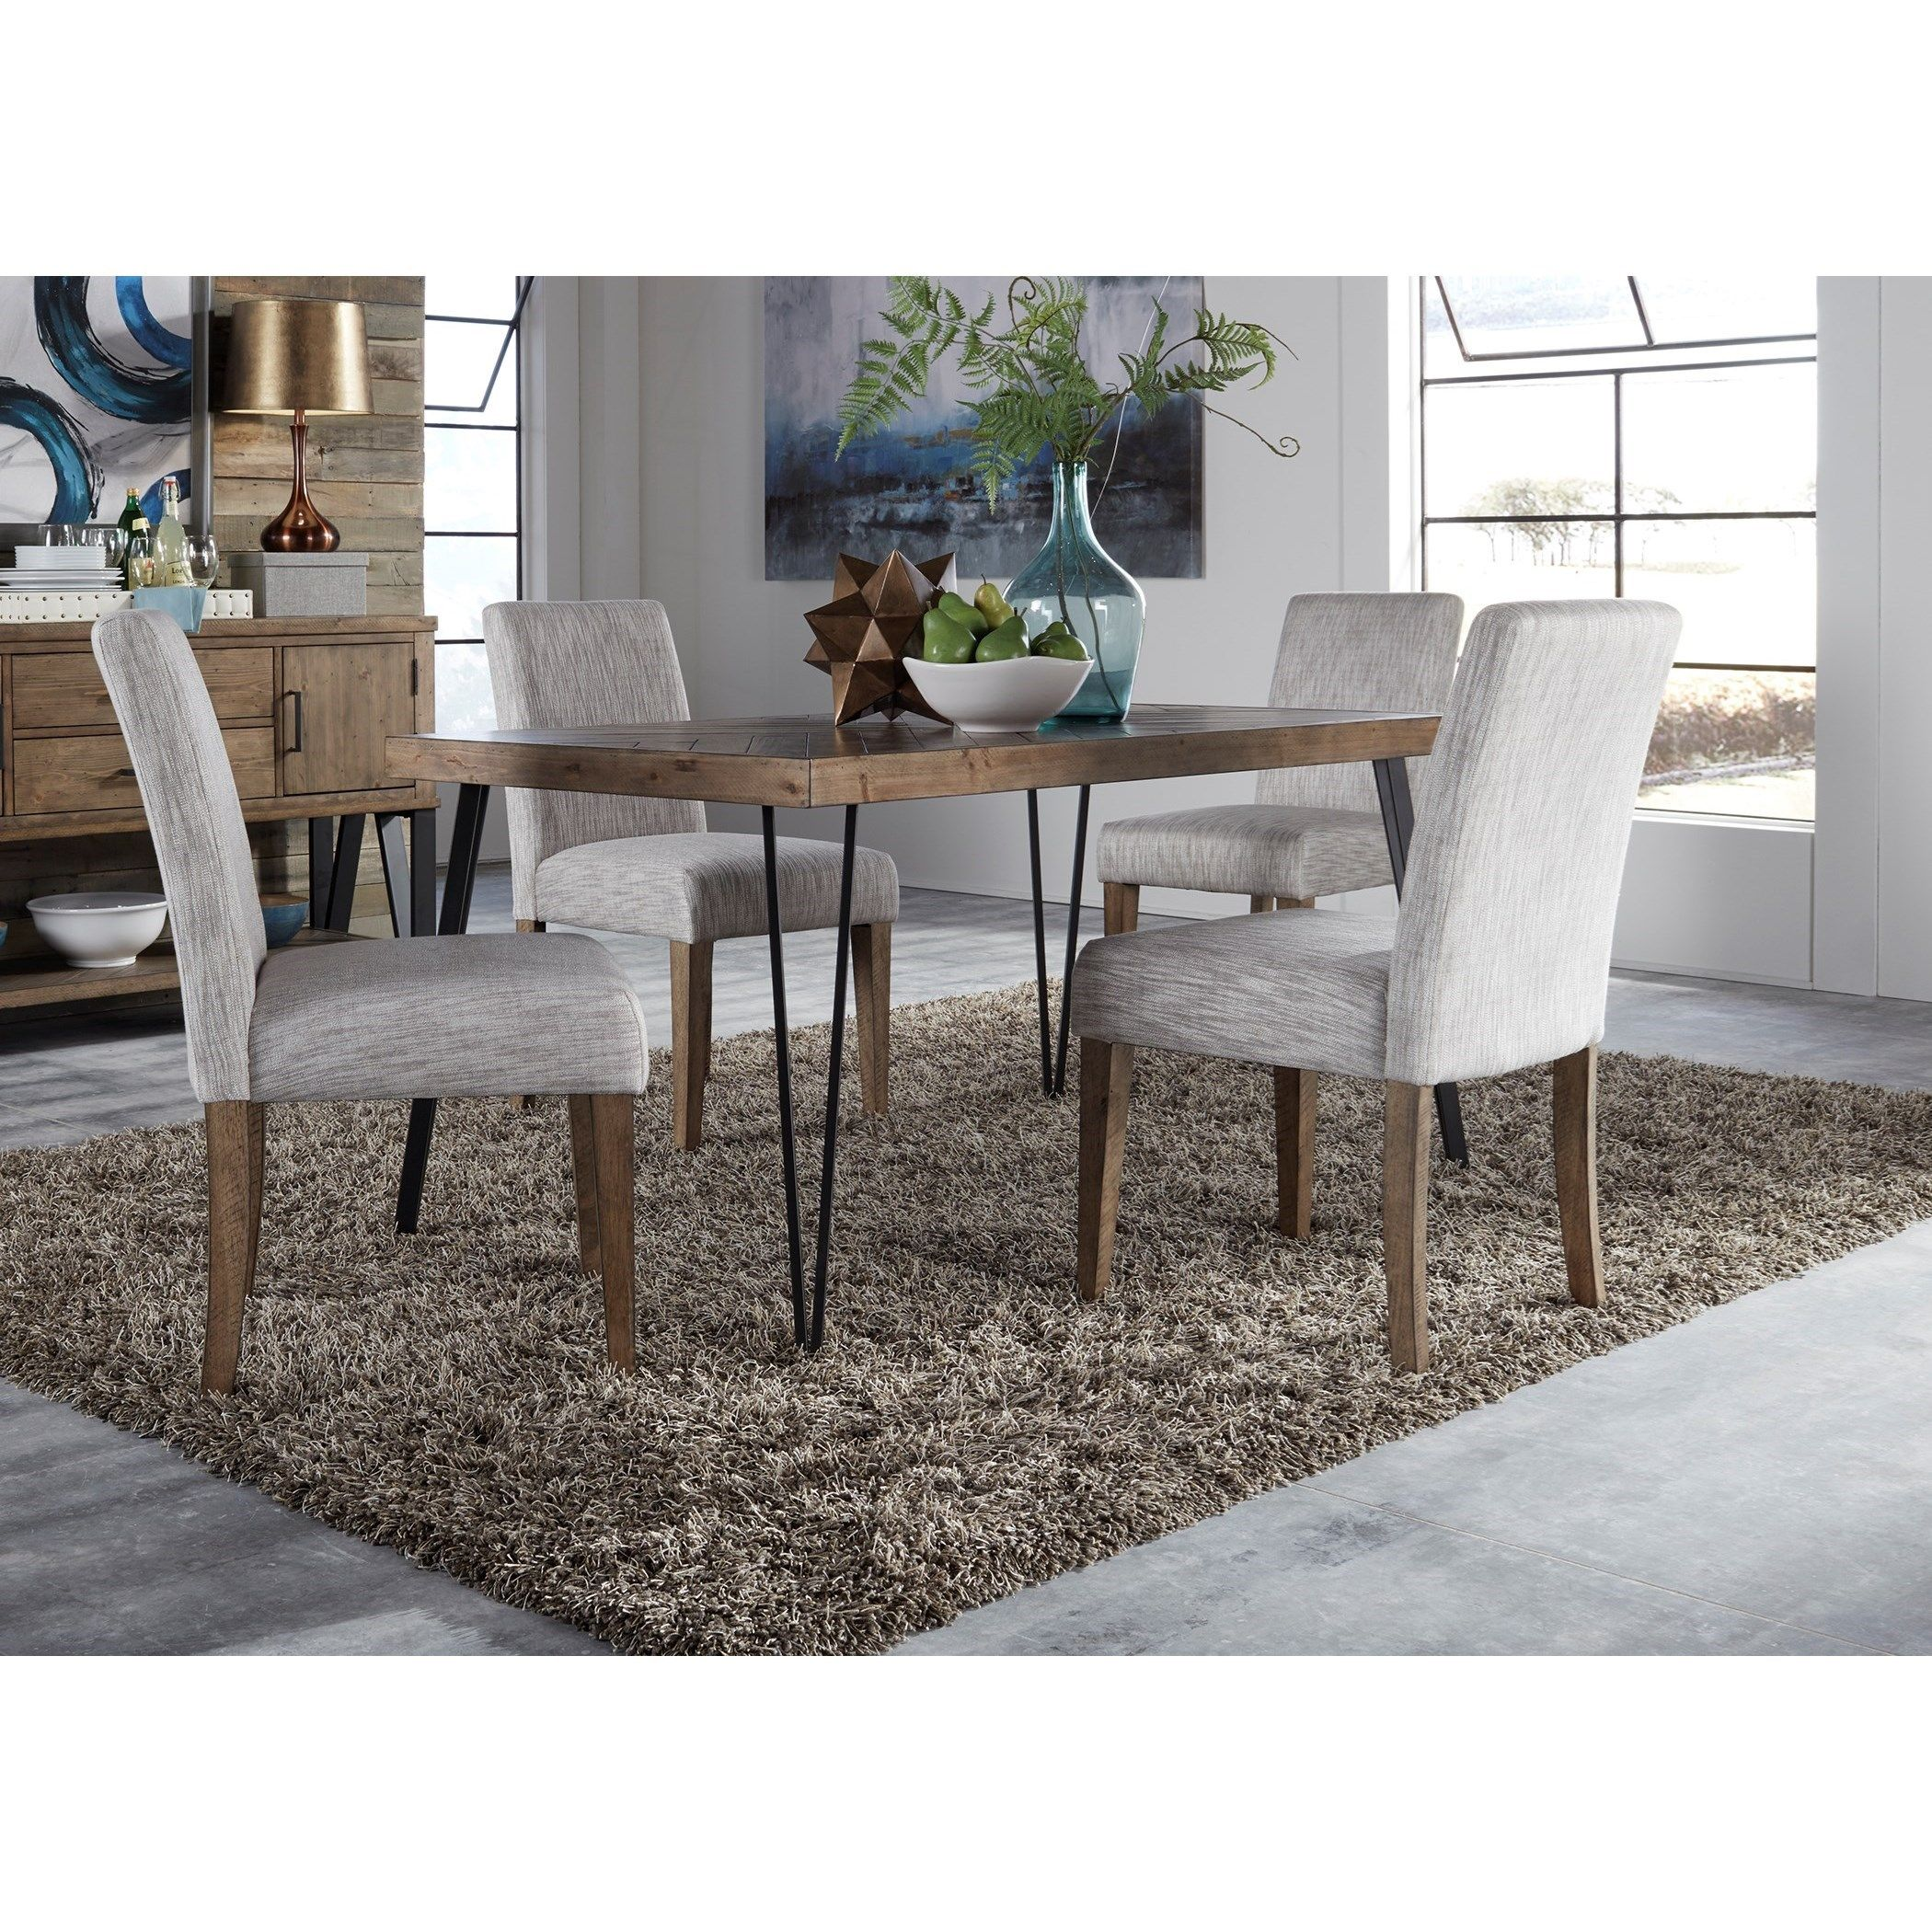 The Oaks Apartments Jackson Michigan: Liberty Furniture Horizons Contemporary Dining Table And